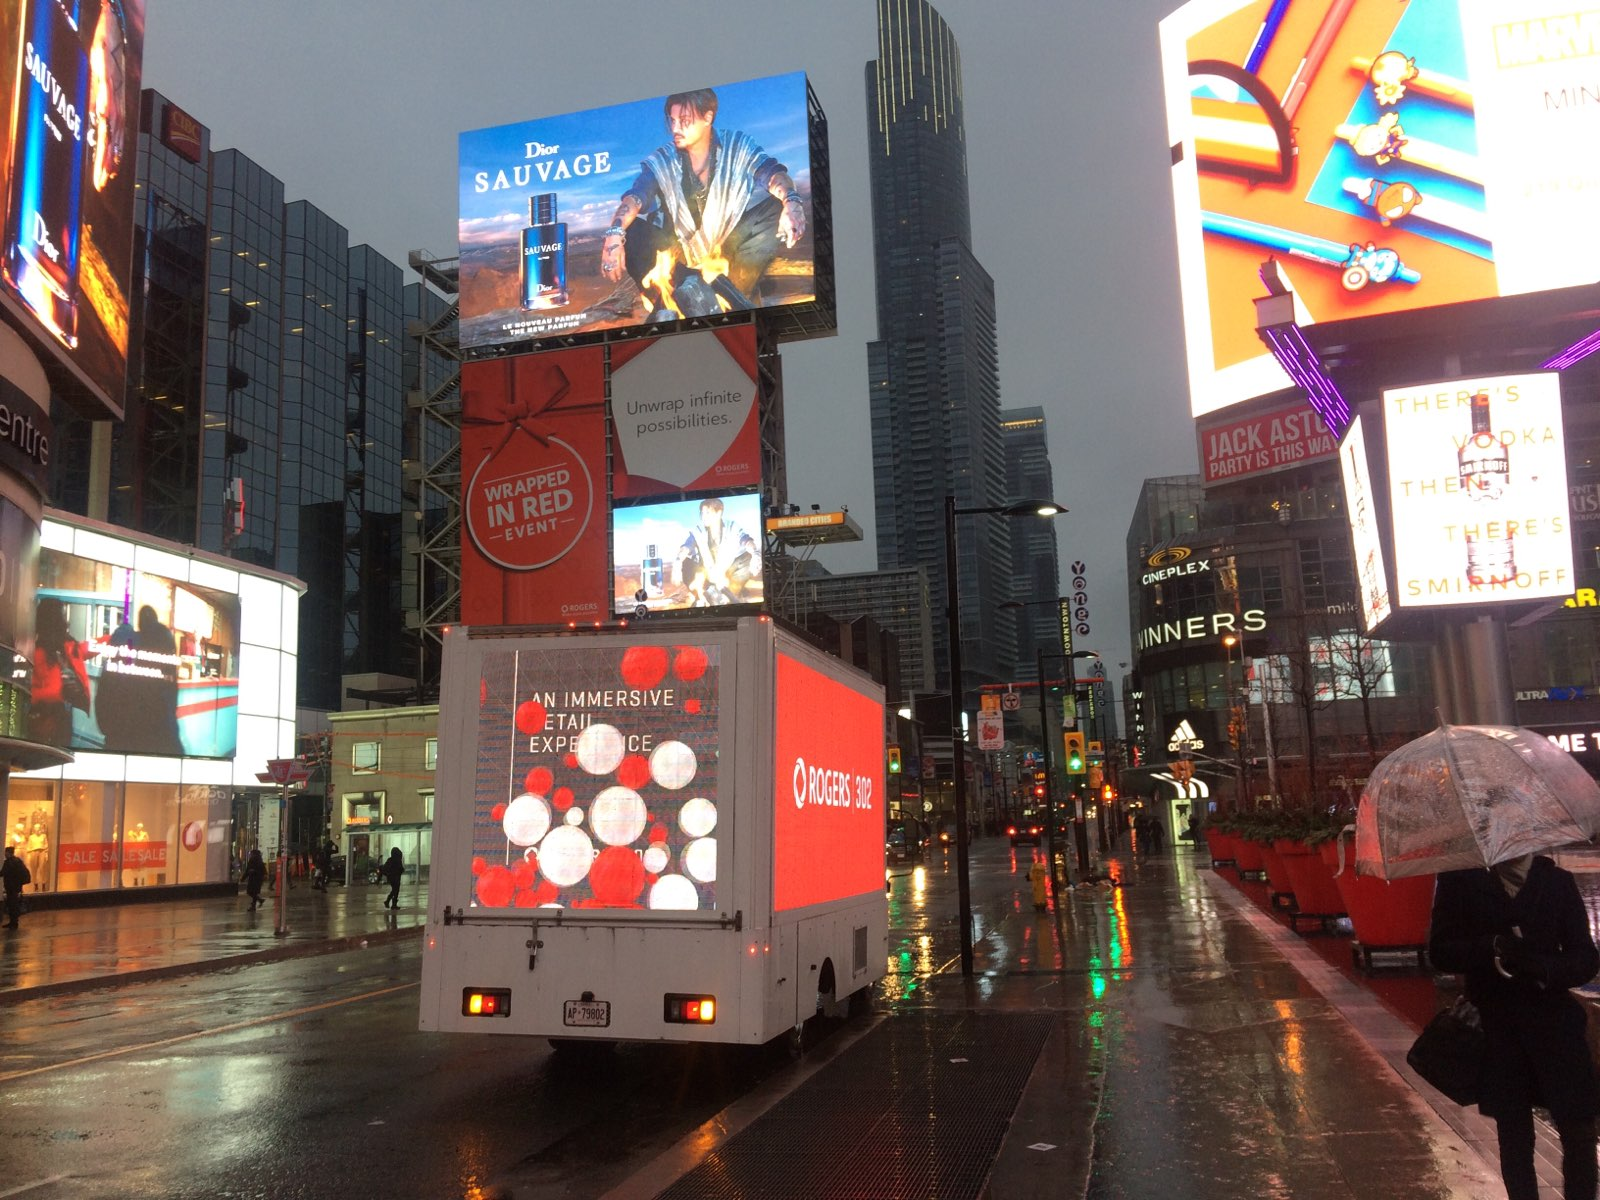 Digital Truck Rogers Digital truck advertisement for Rogers